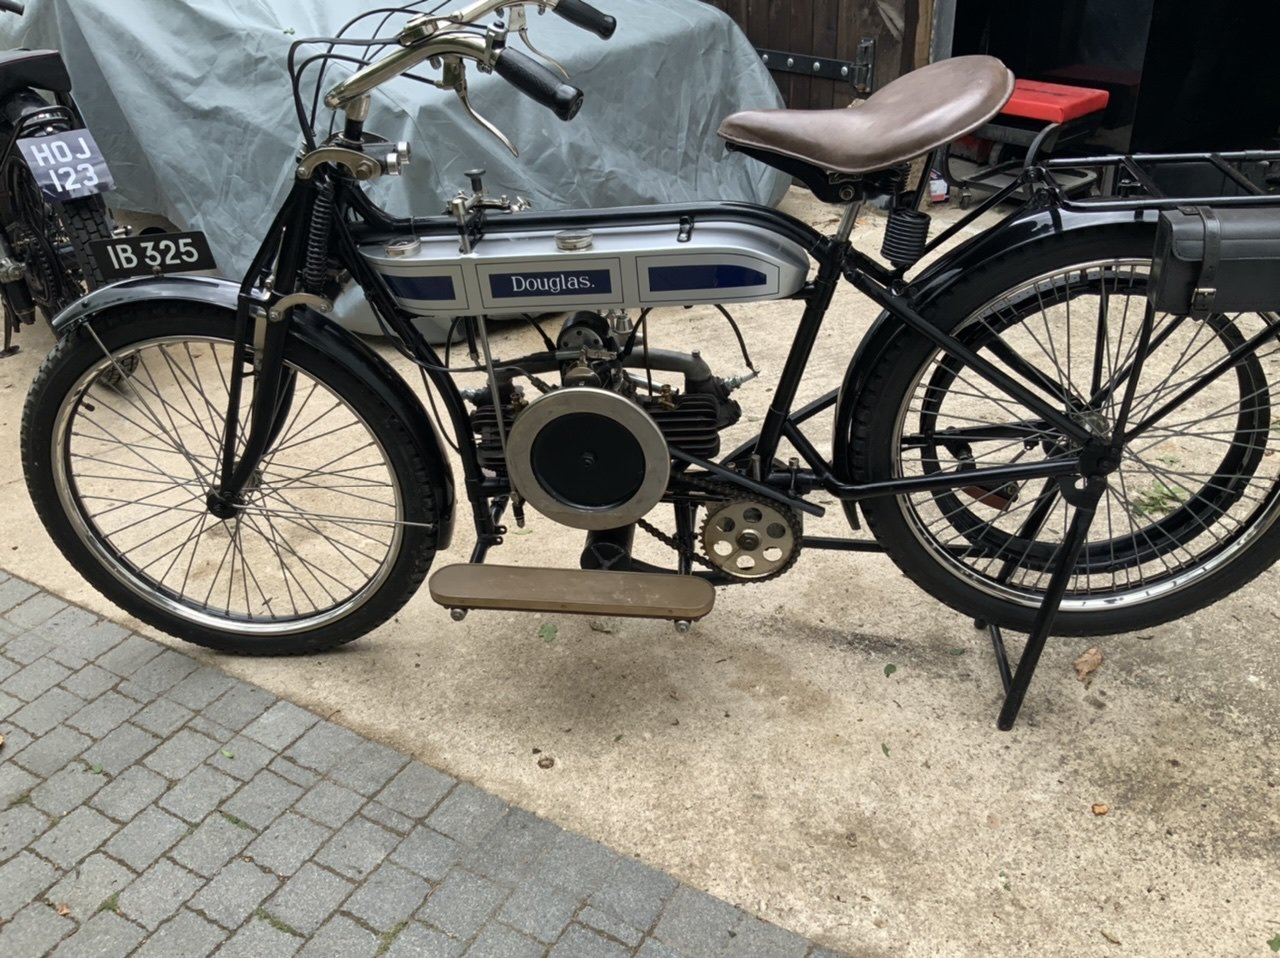 1912 Douglas 2 3/4hp Absolutely stunning For Sale (picture 5 of 6)